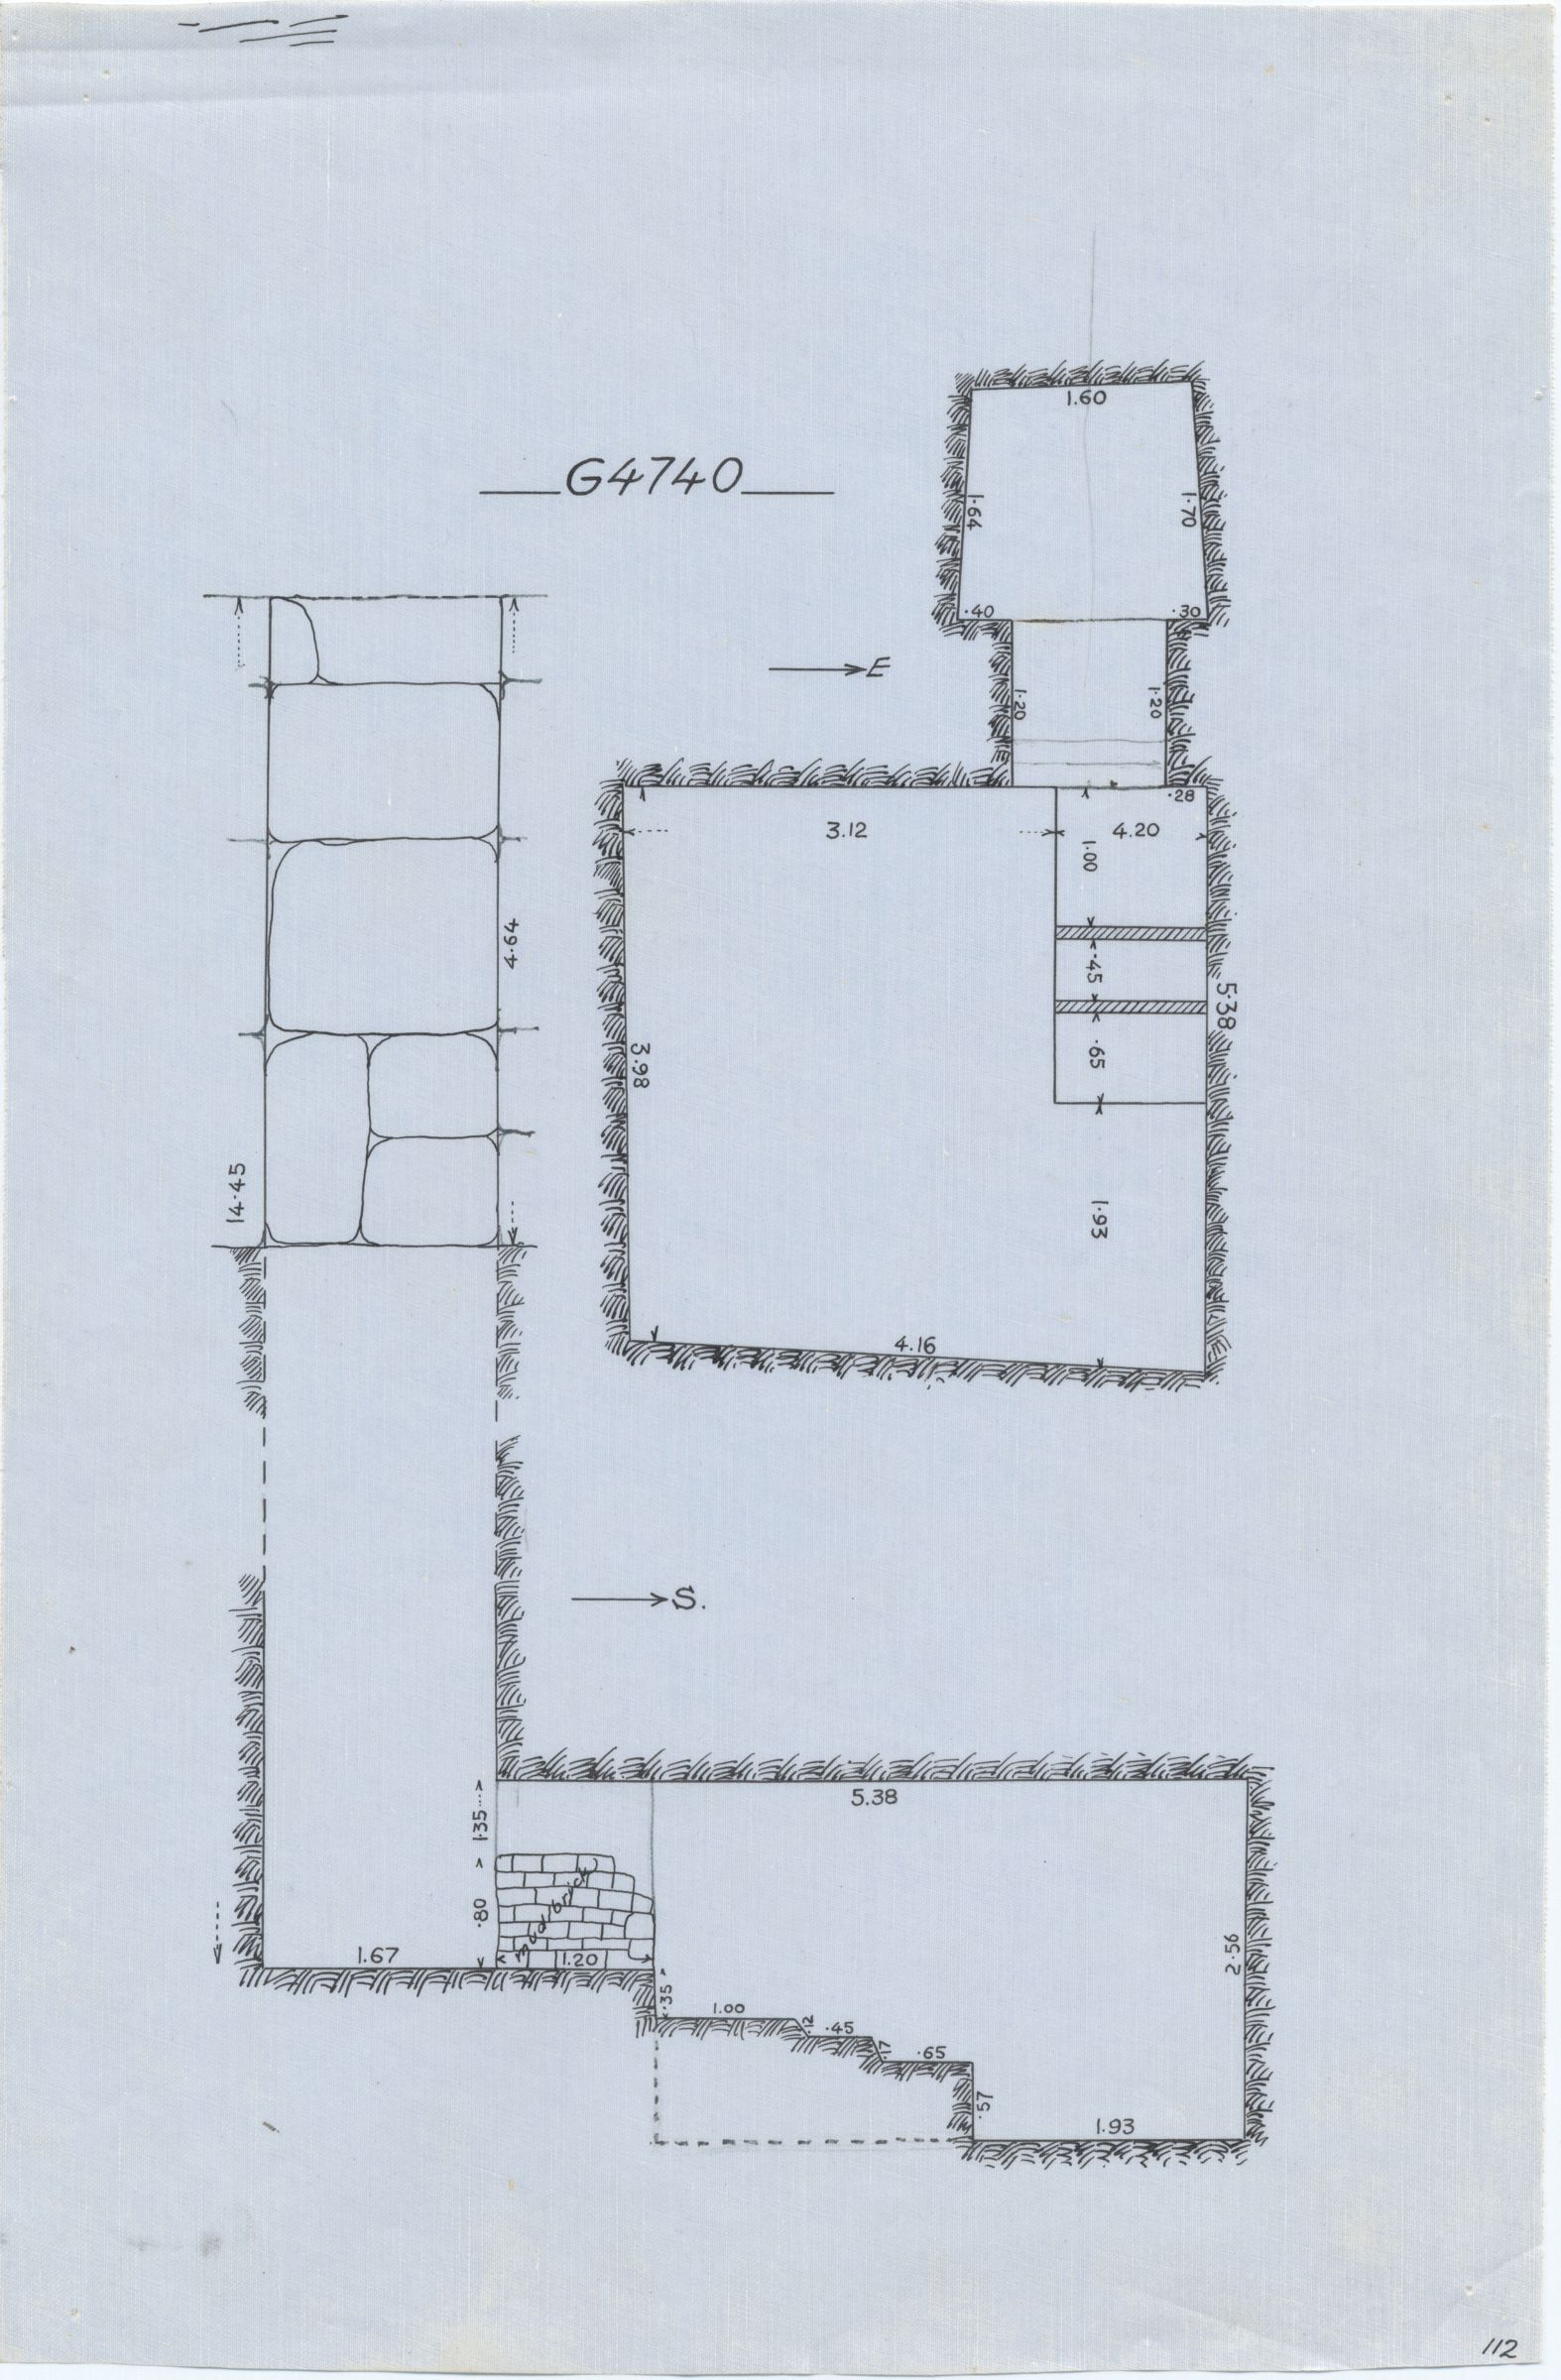 Maps and plans: G 4740, Shaft A